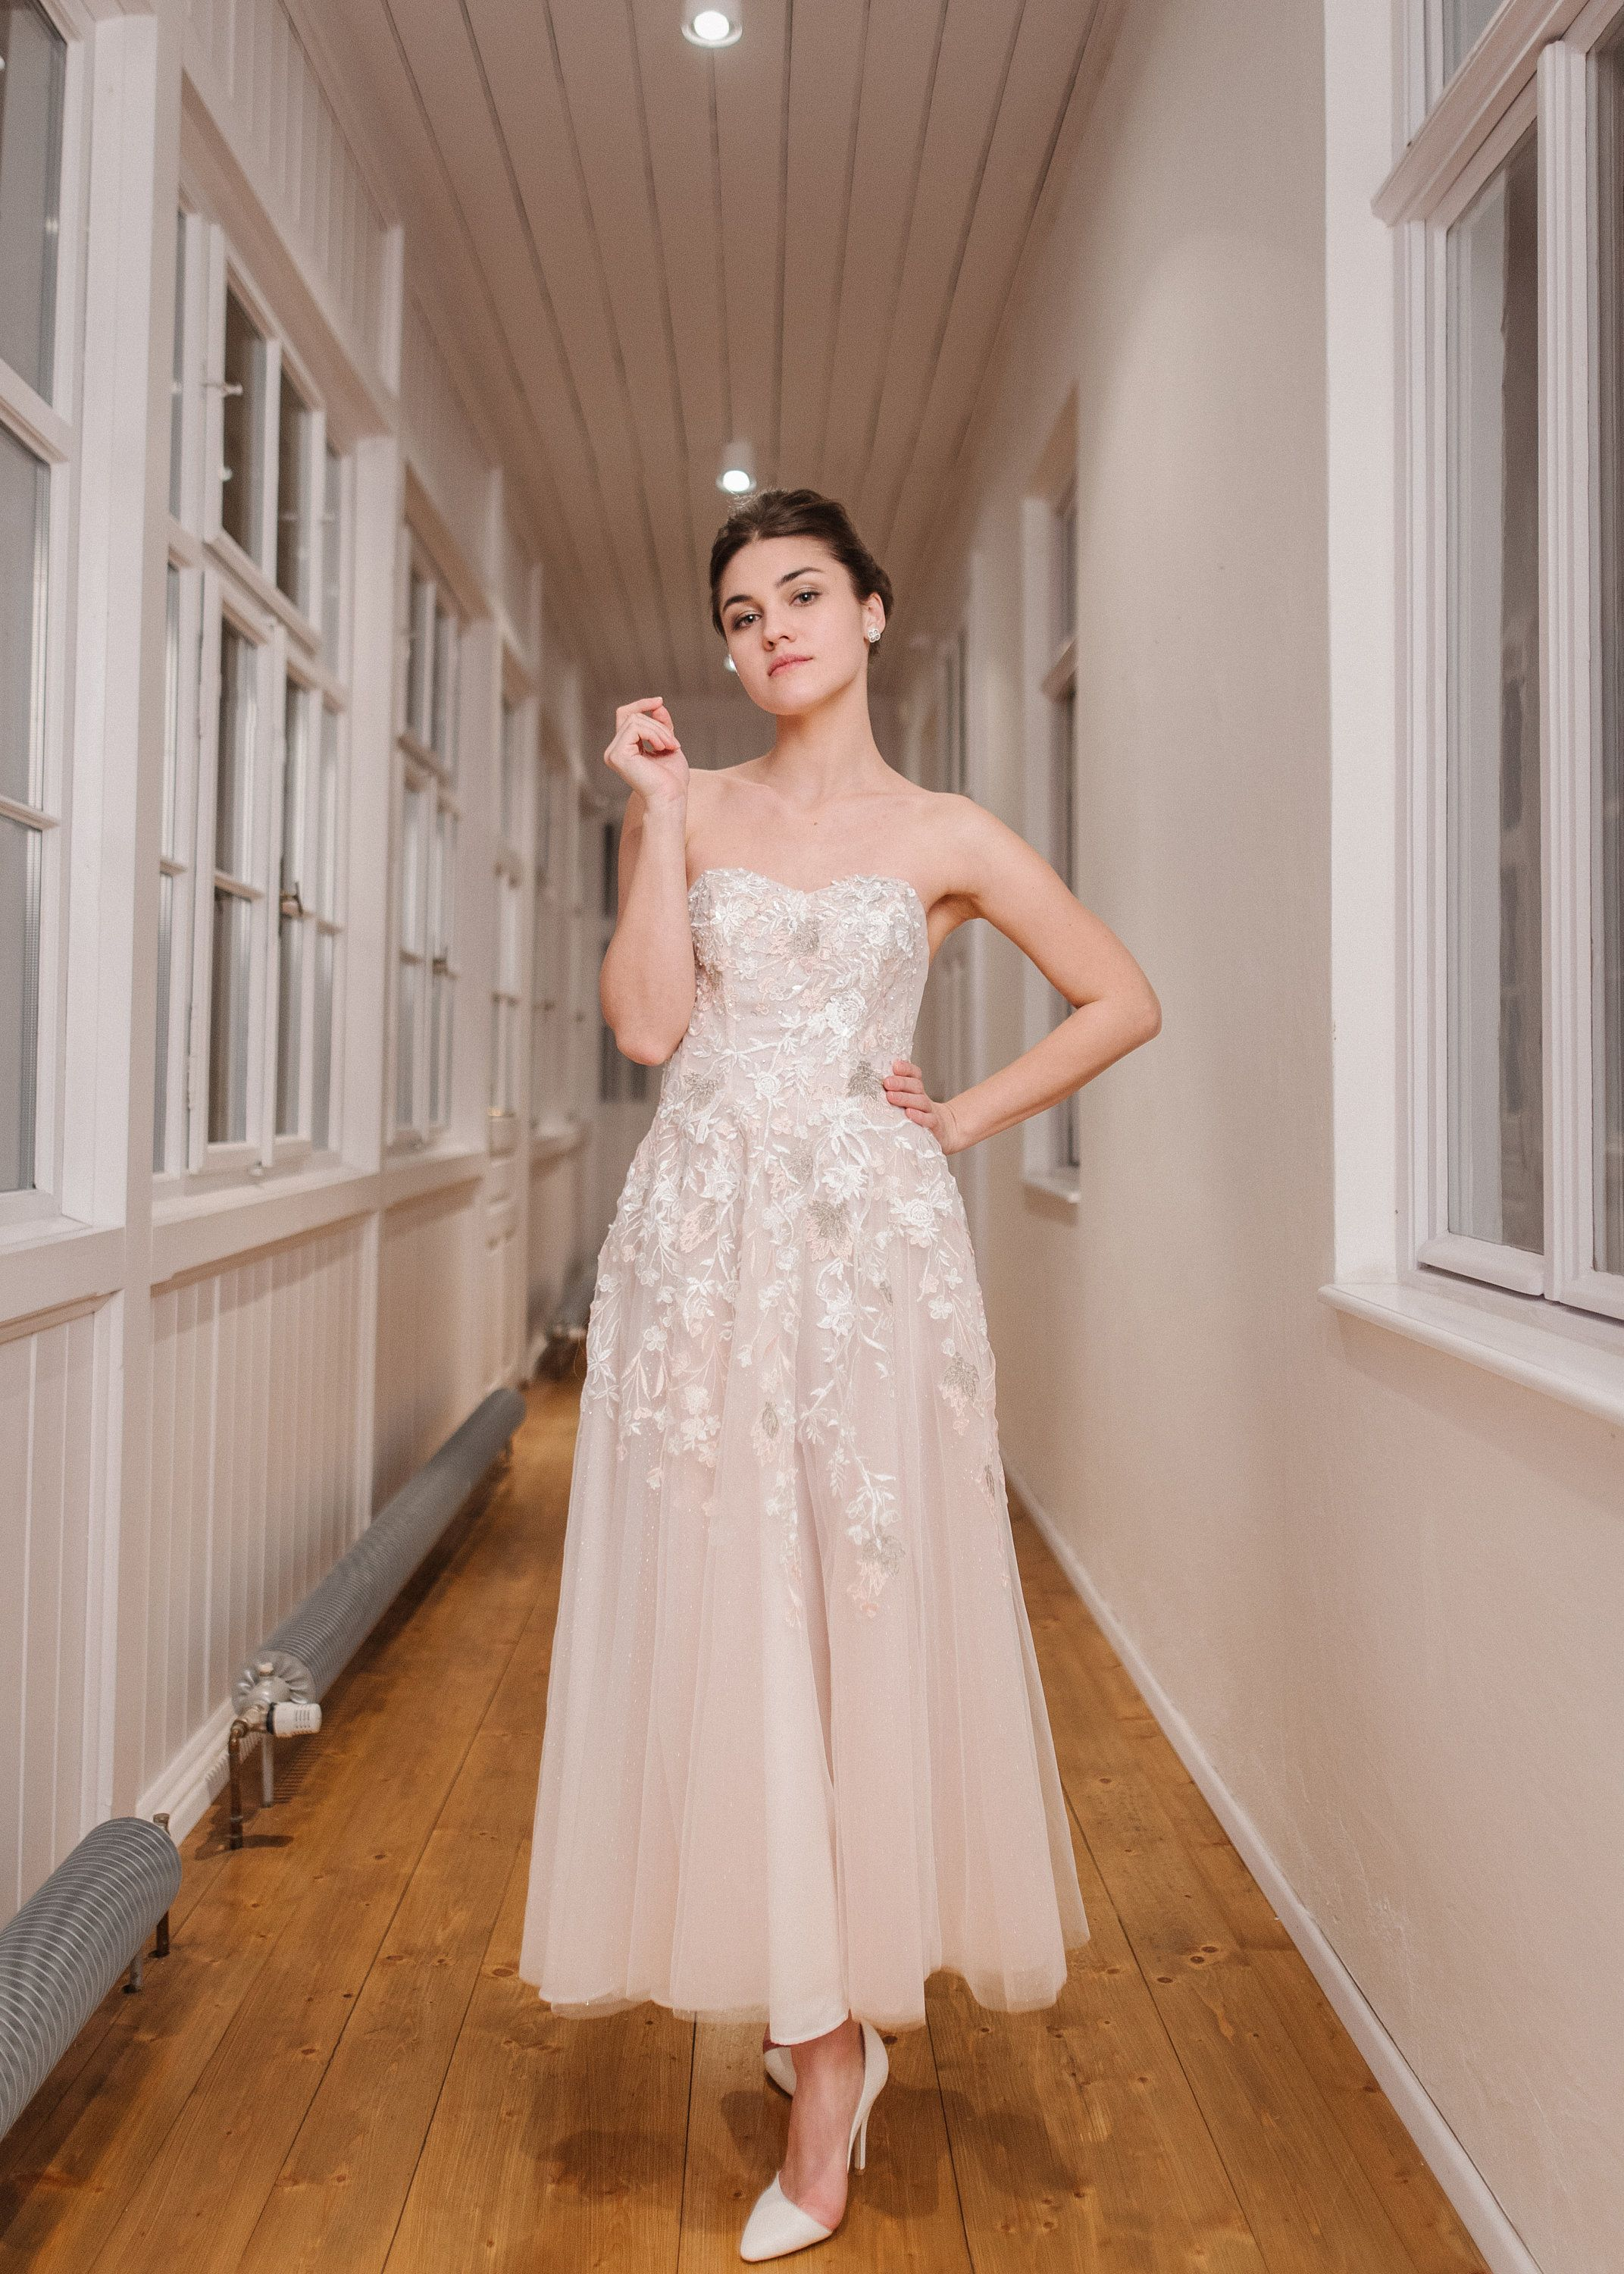 Nontraditional wedding dress with detachable courttrain